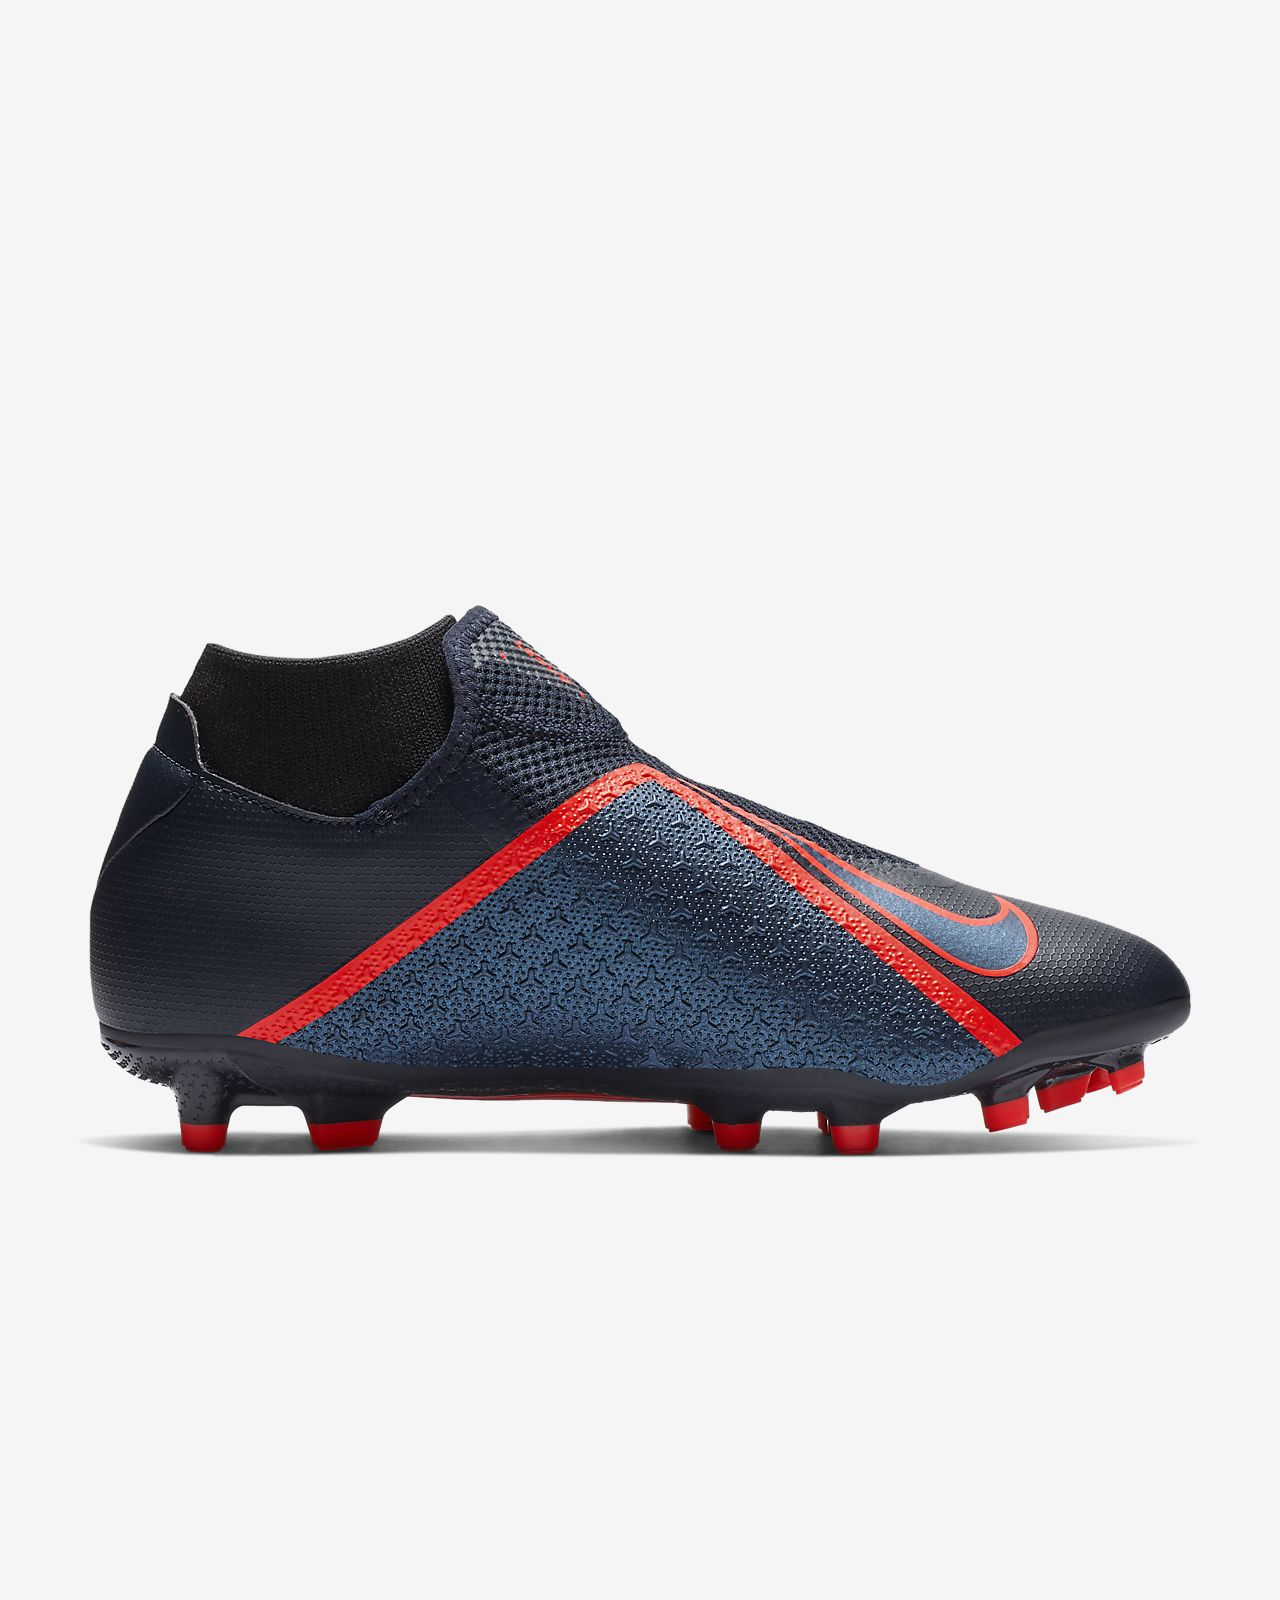 cheap for discount 8abca d9cbe ... Nike PhantomVSN Academy Dynamic Fit MG Multi-Ground Soccer Cleat